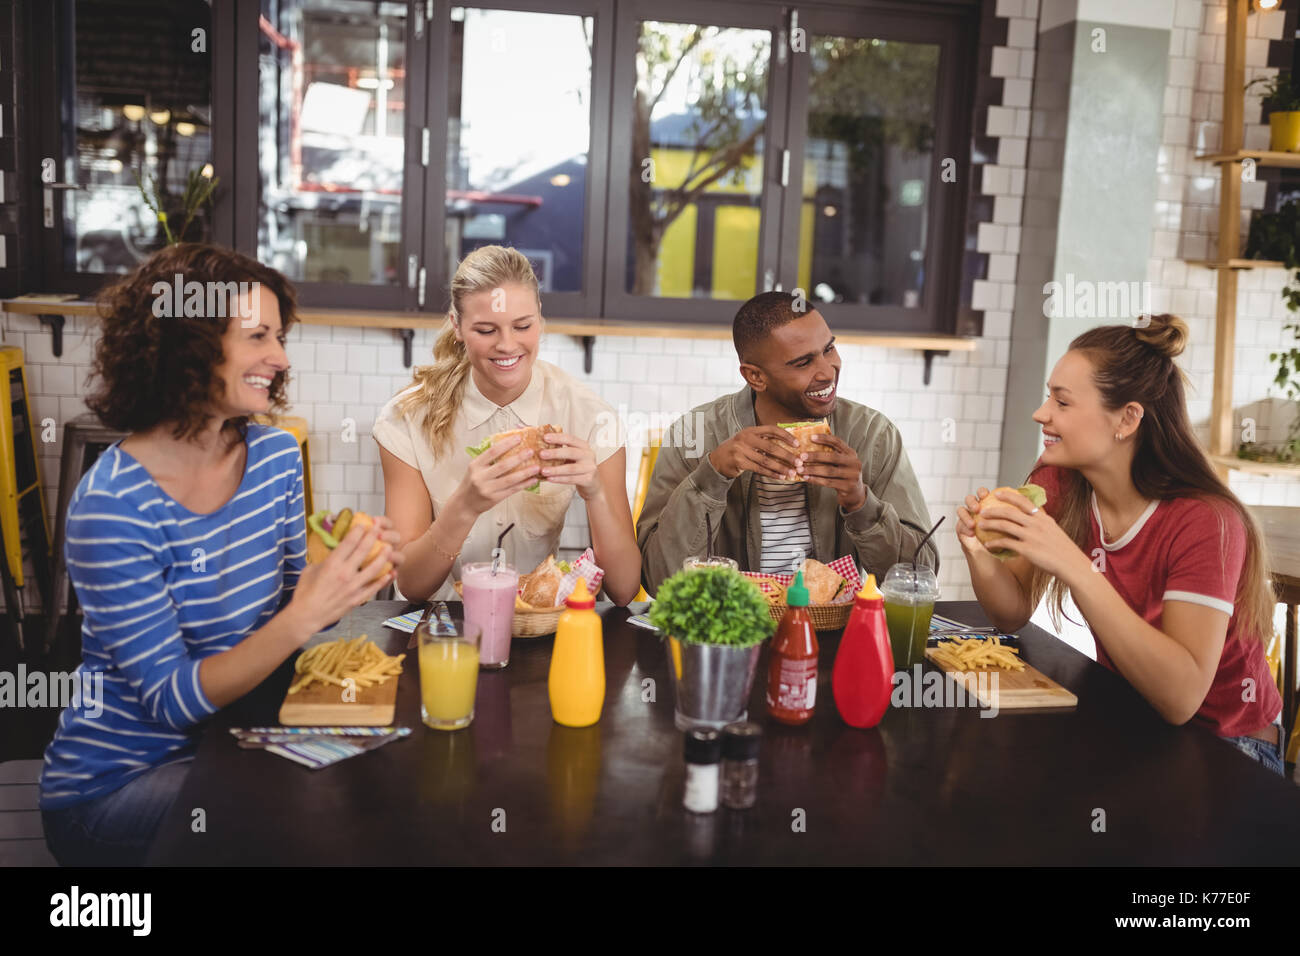 Smiling young friends eating food while sitting at table in coffee shop - Stock Image